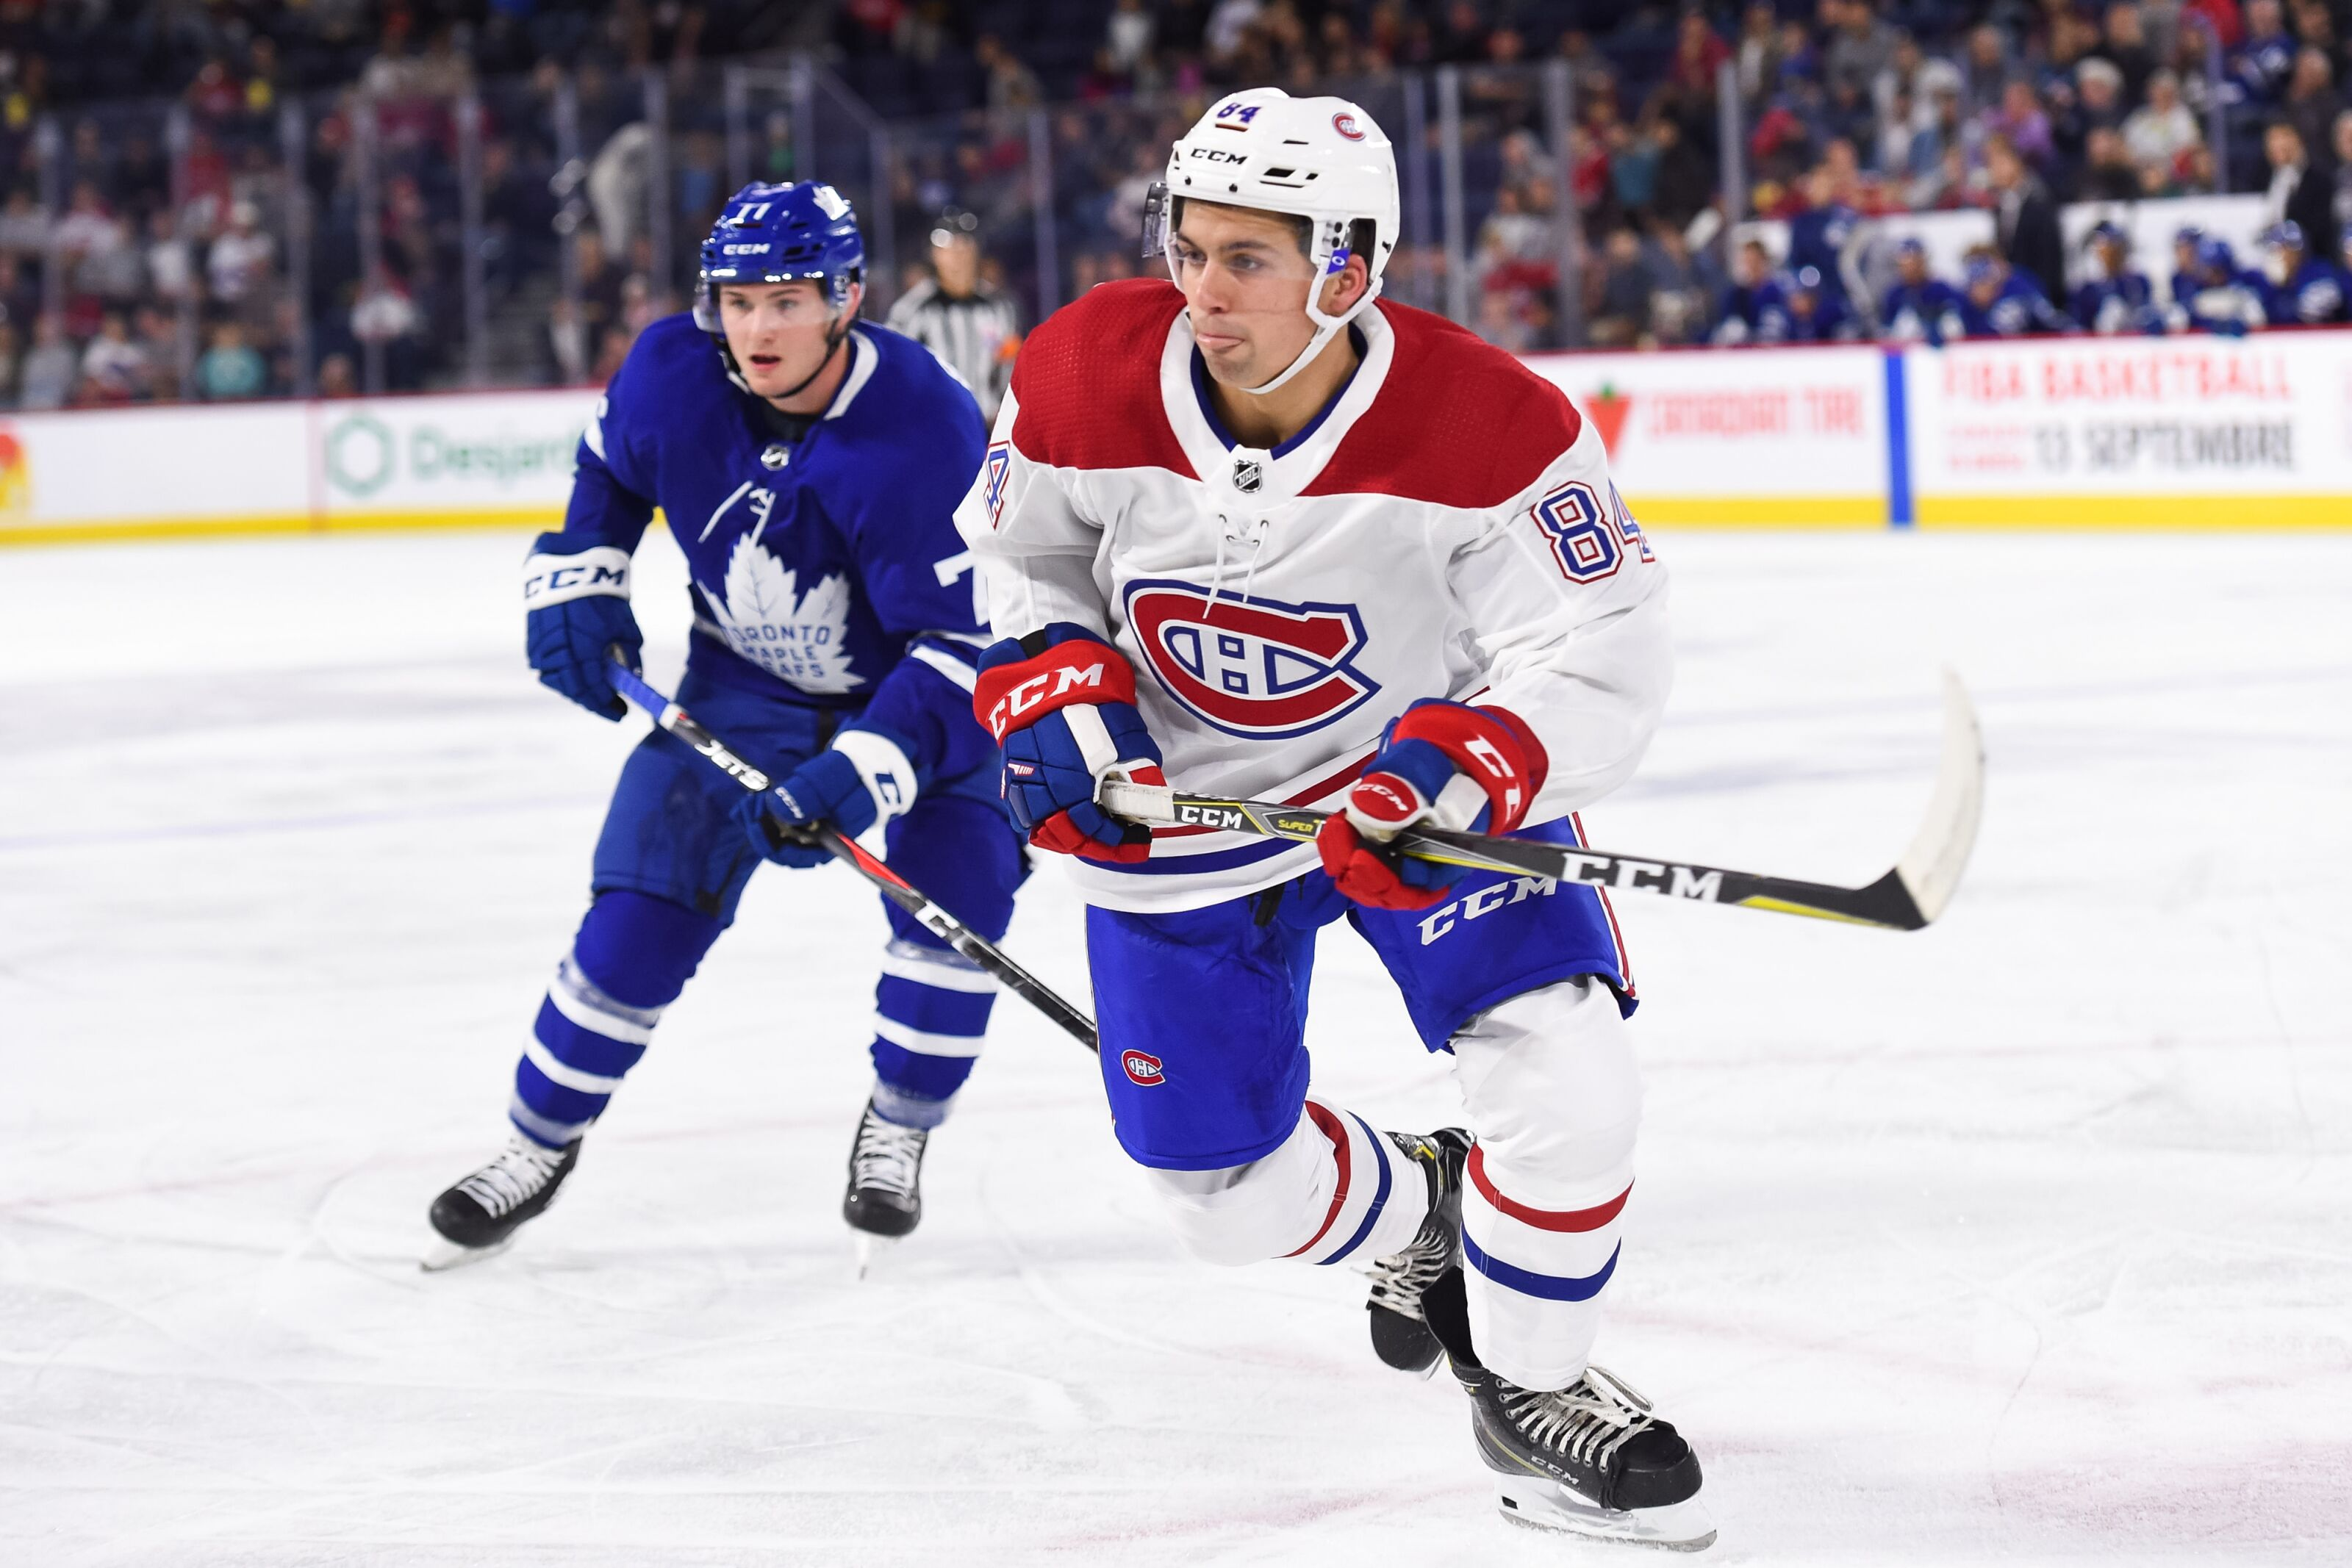 Montreal Canadiens Prospect Cole Fonstad Off To Terrific Start With New Team